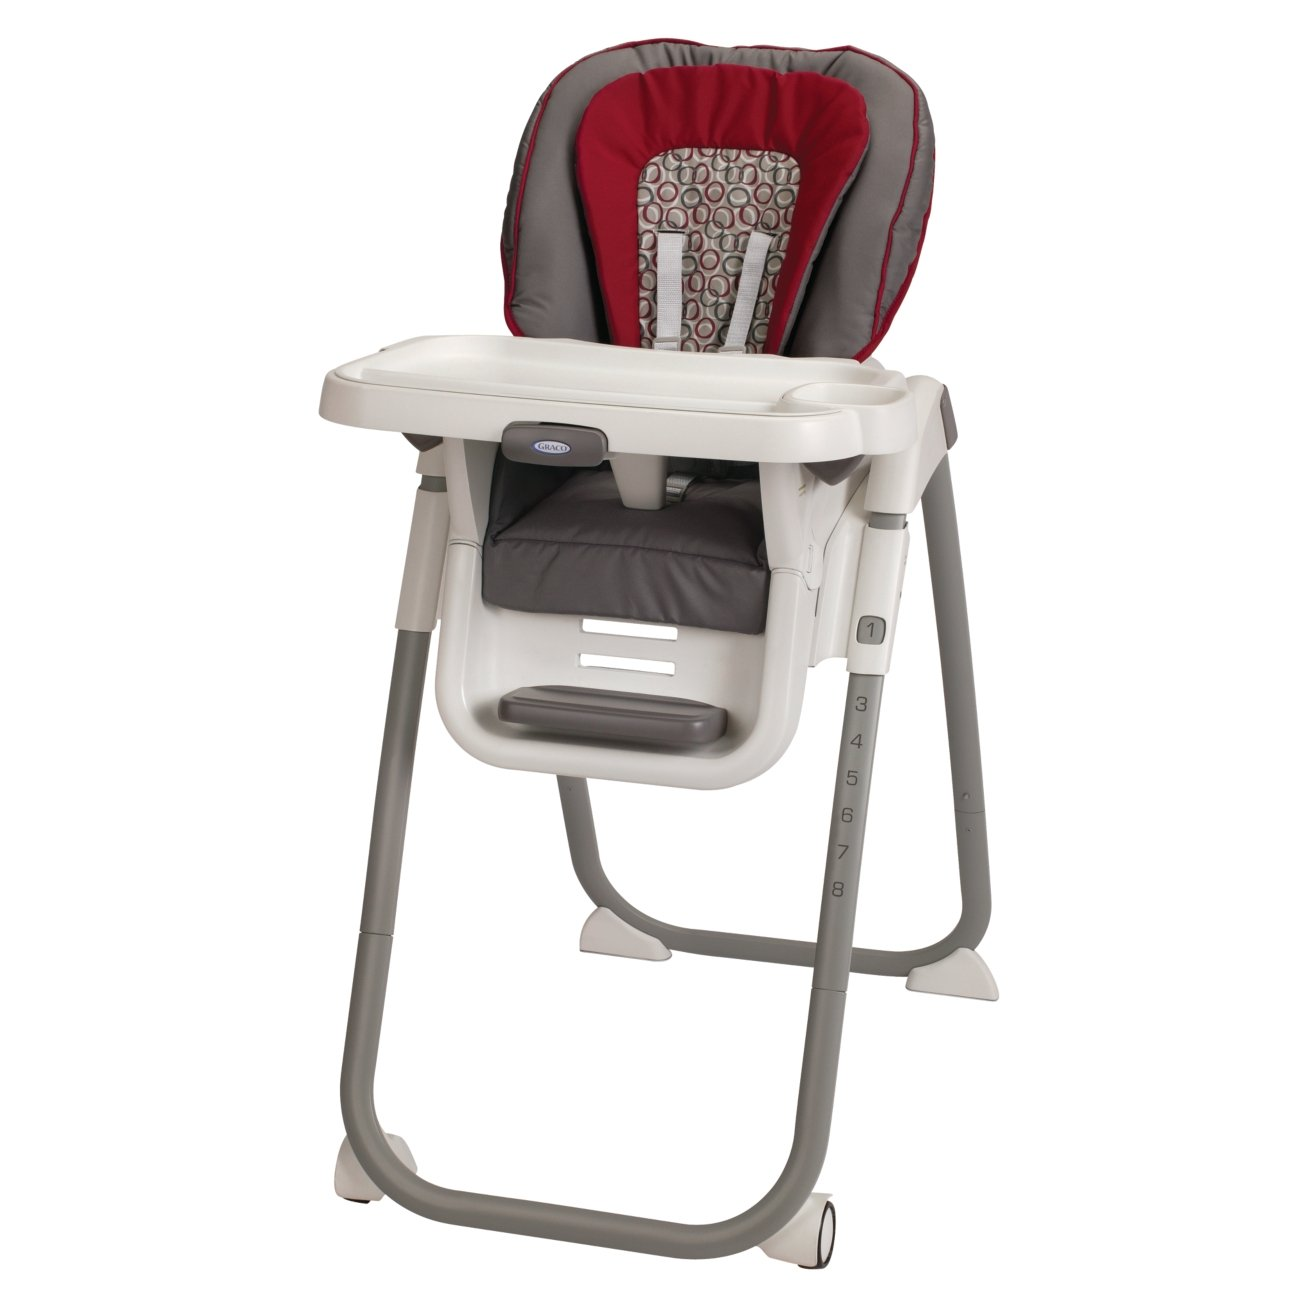 Graco TableFit Baby High Chair, Finley by Graco (Image #2)